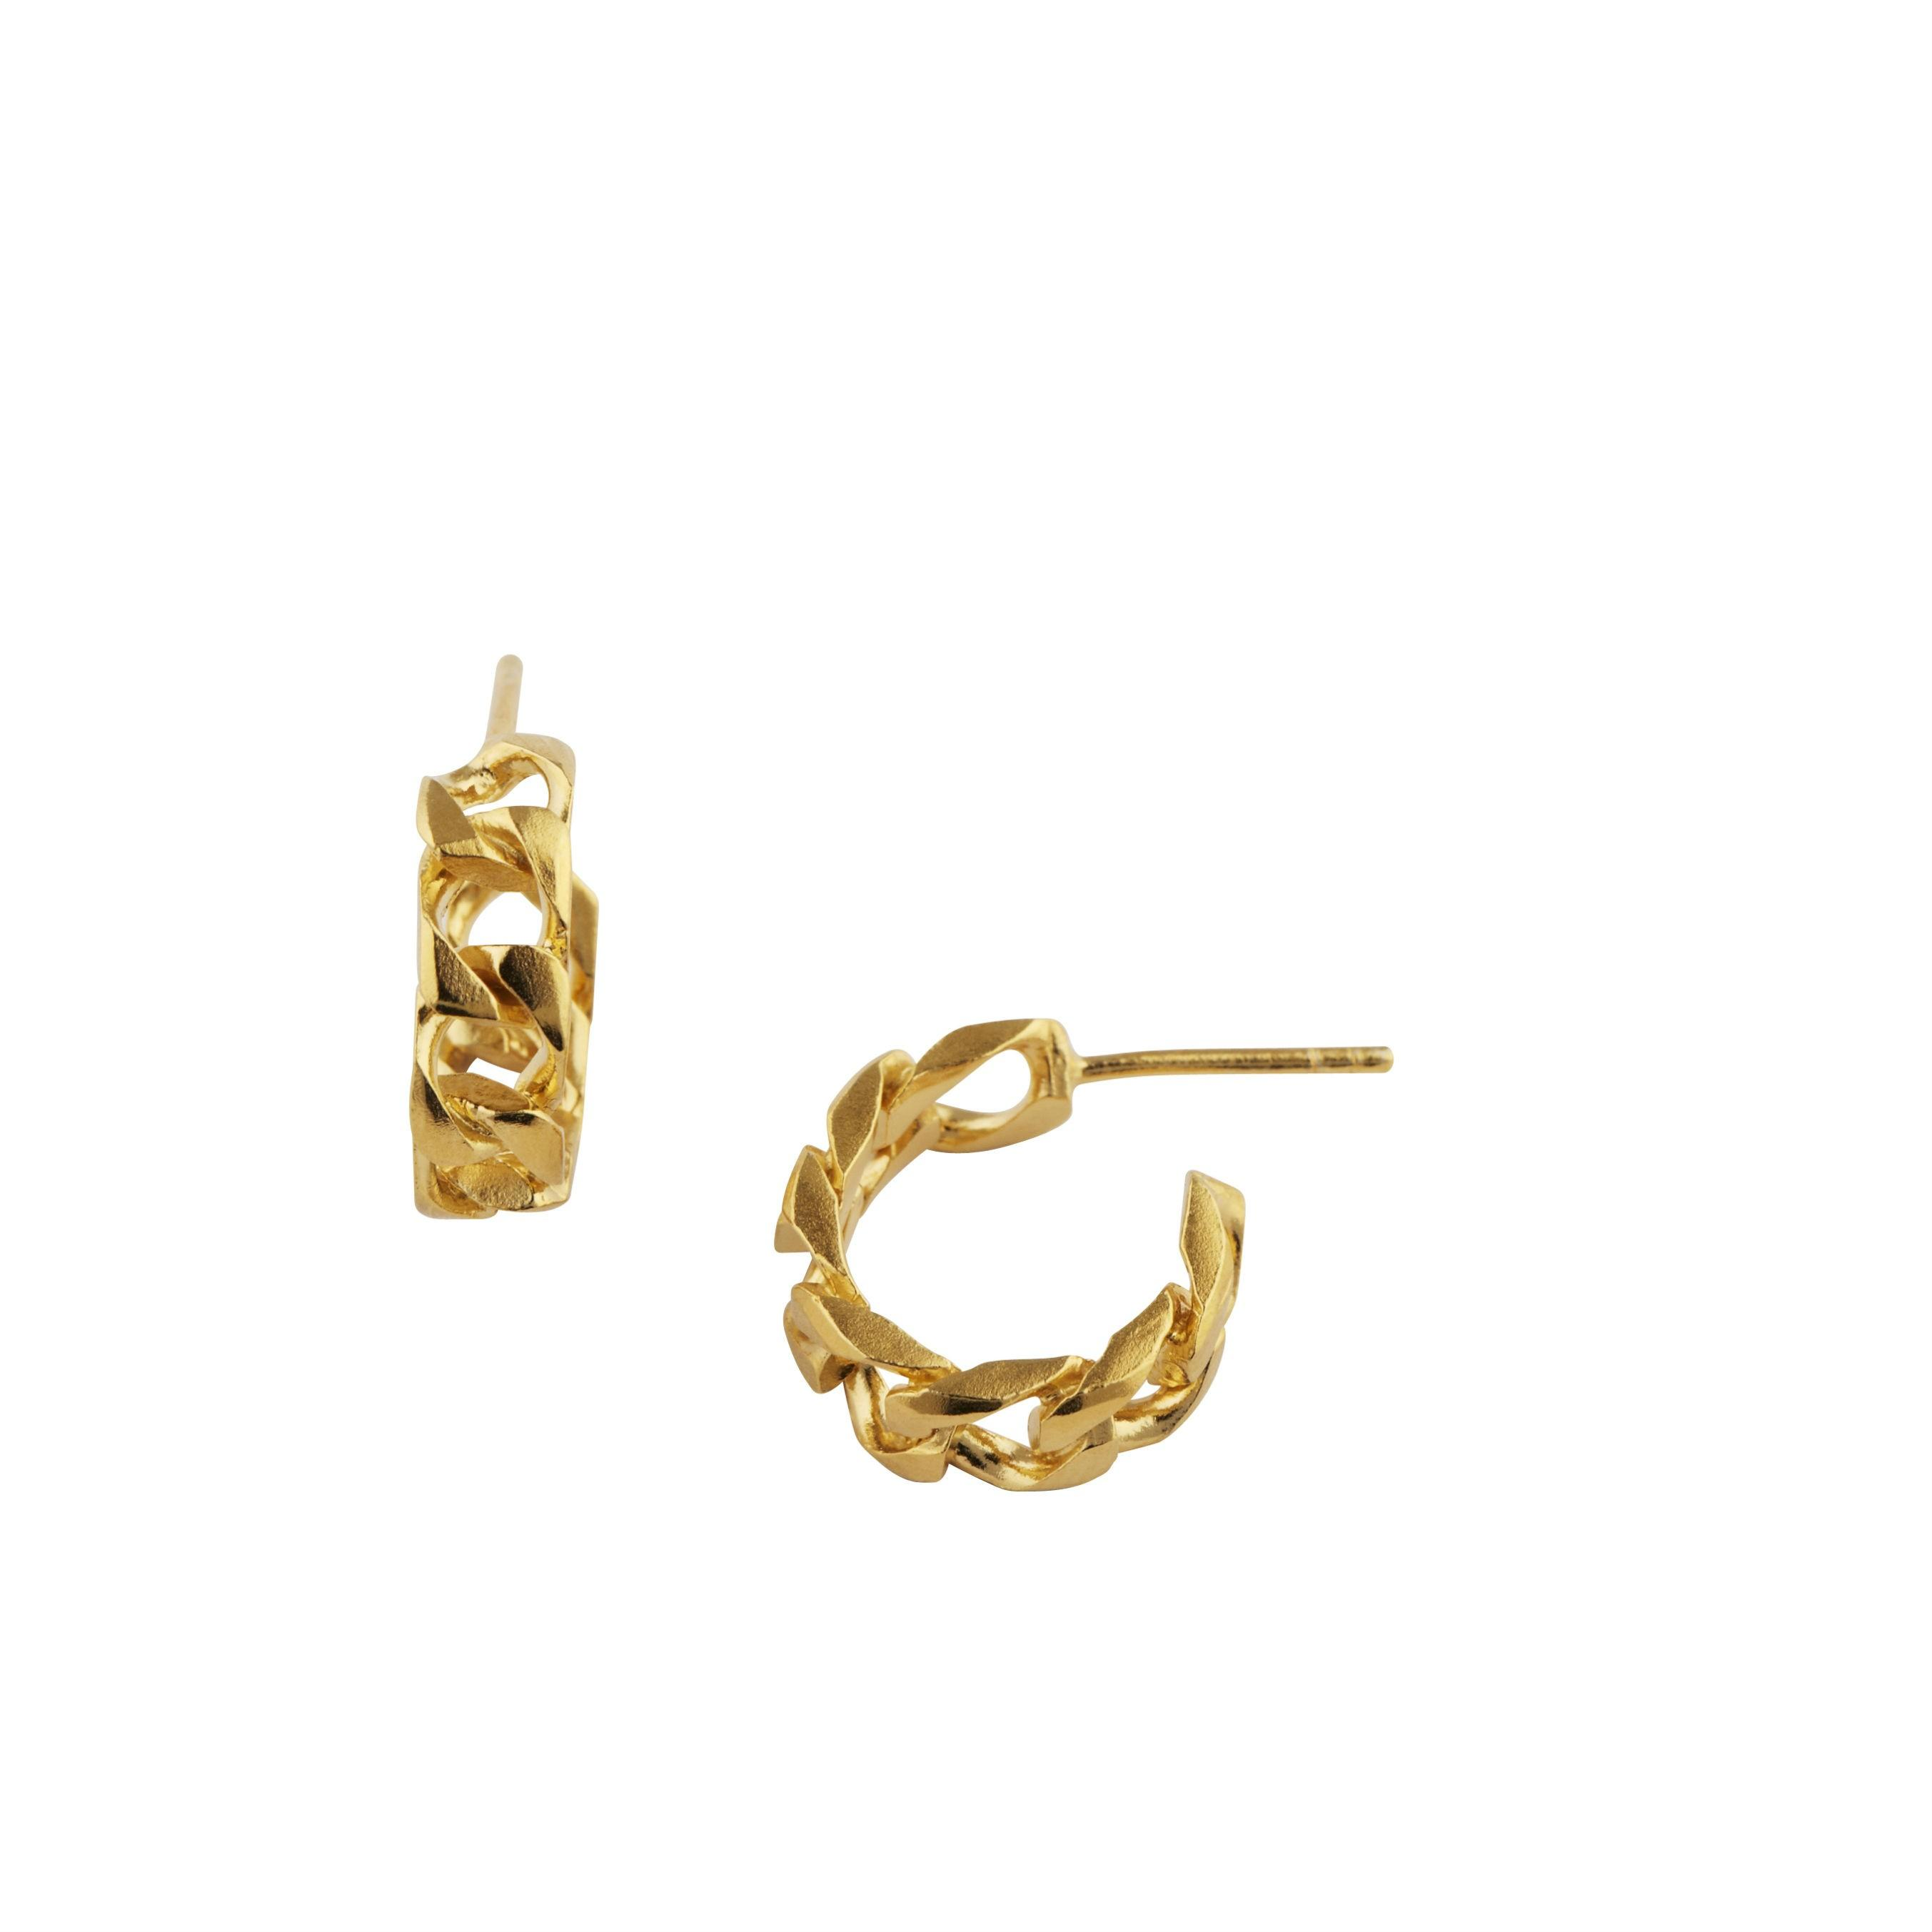 https://www.selecteddesigners.dk/media/catalog/product/r/i/riley_earring_18-carat-goldplating.jpg